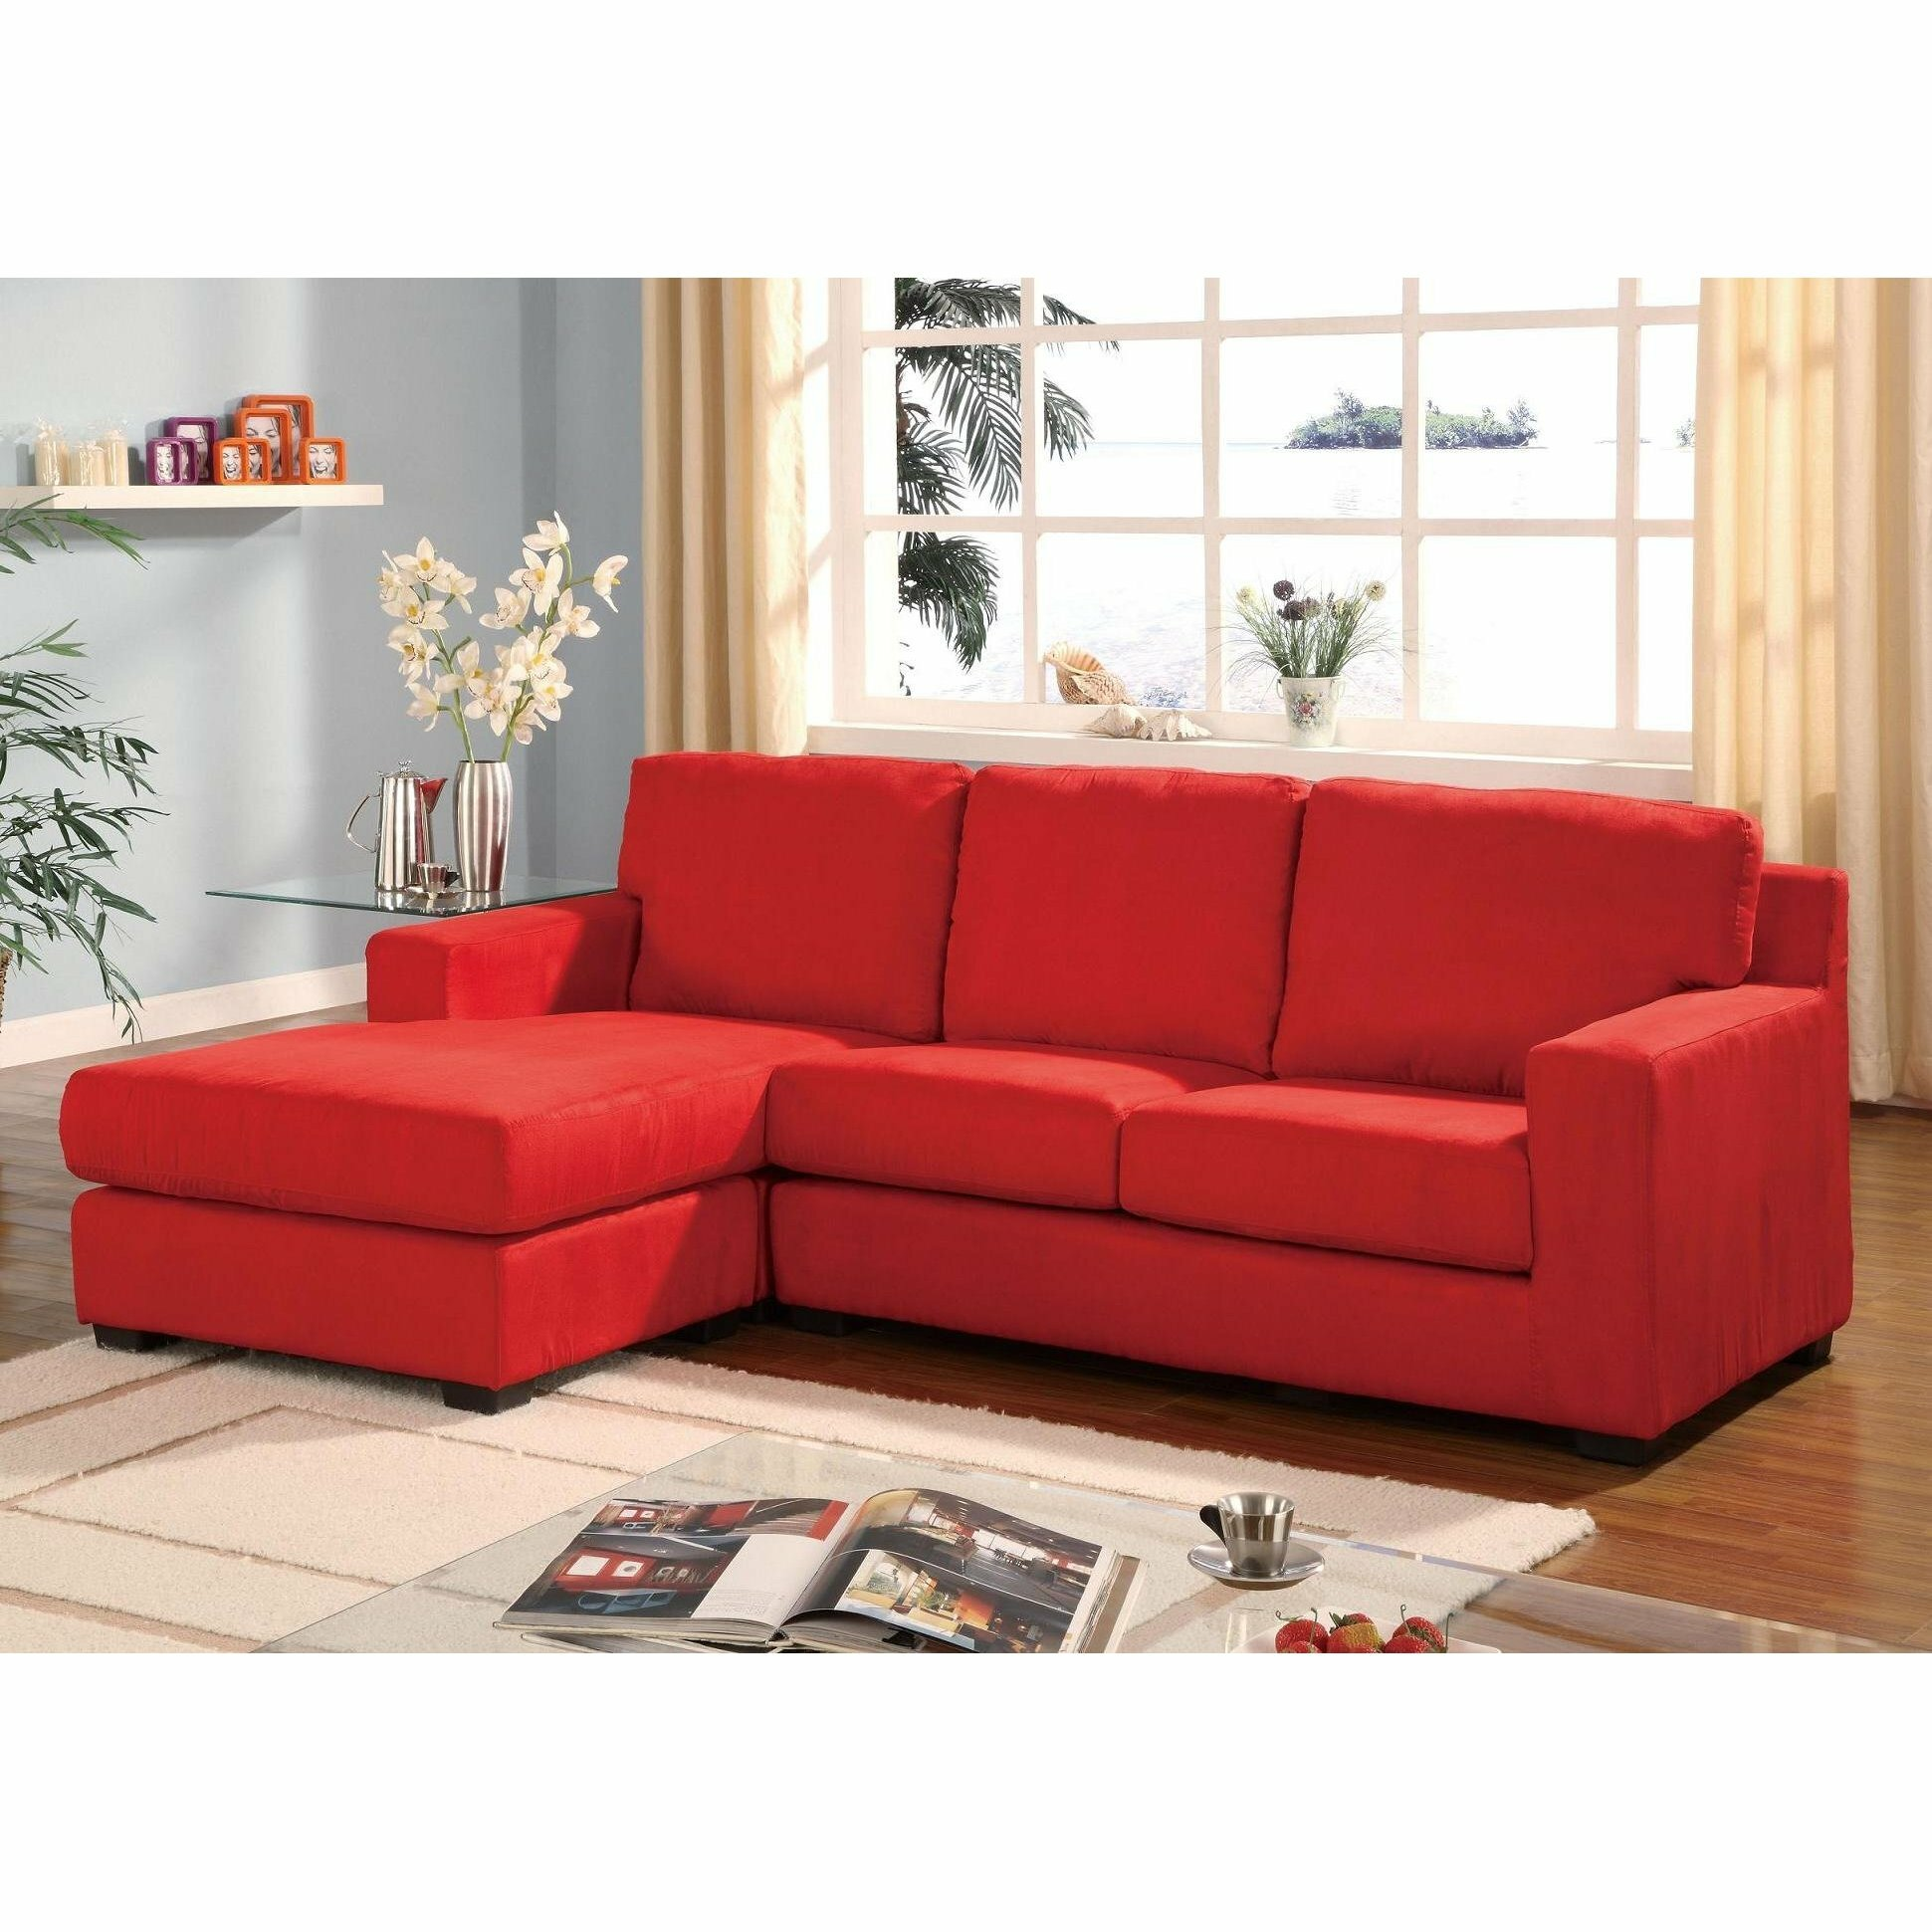 Big Comfy Sectional Couches | Red Sectional Sofa | Sofa Chaise Lounge Sectional